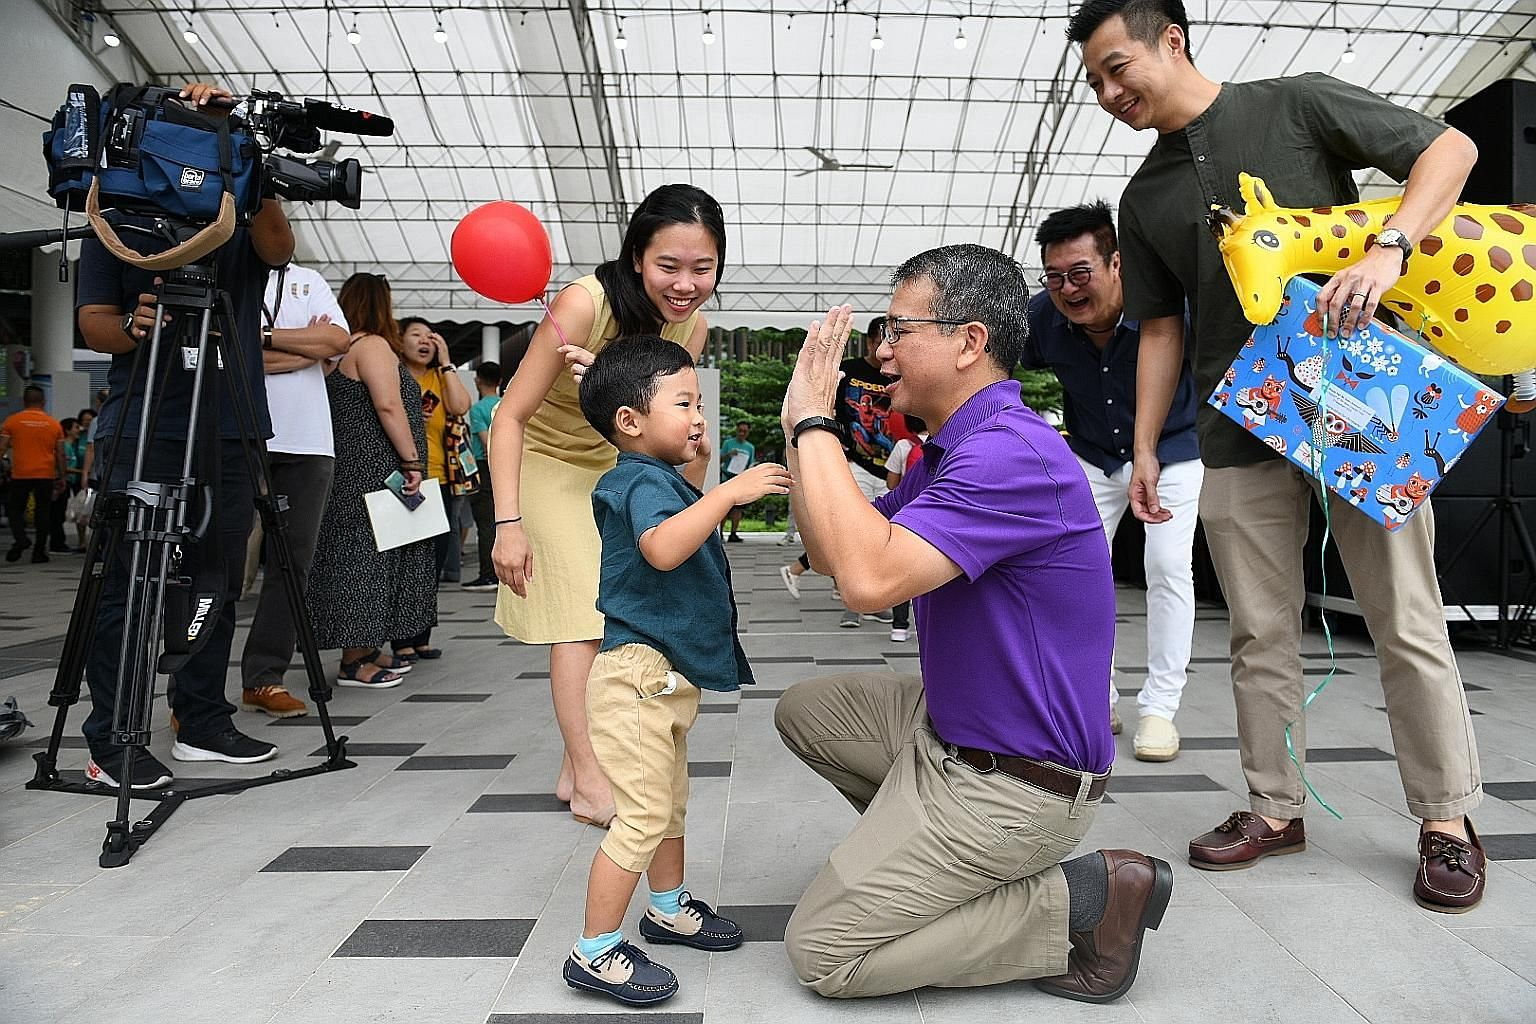 Public servant Geoffrey Toi and his wife, Straits Times correspondent Amelia Teng, watching as their three-year-old son Christopher interacted with Senior Minister of State for Health and Law Edwin Tong at the Punggol carnival organised by Mount Alve